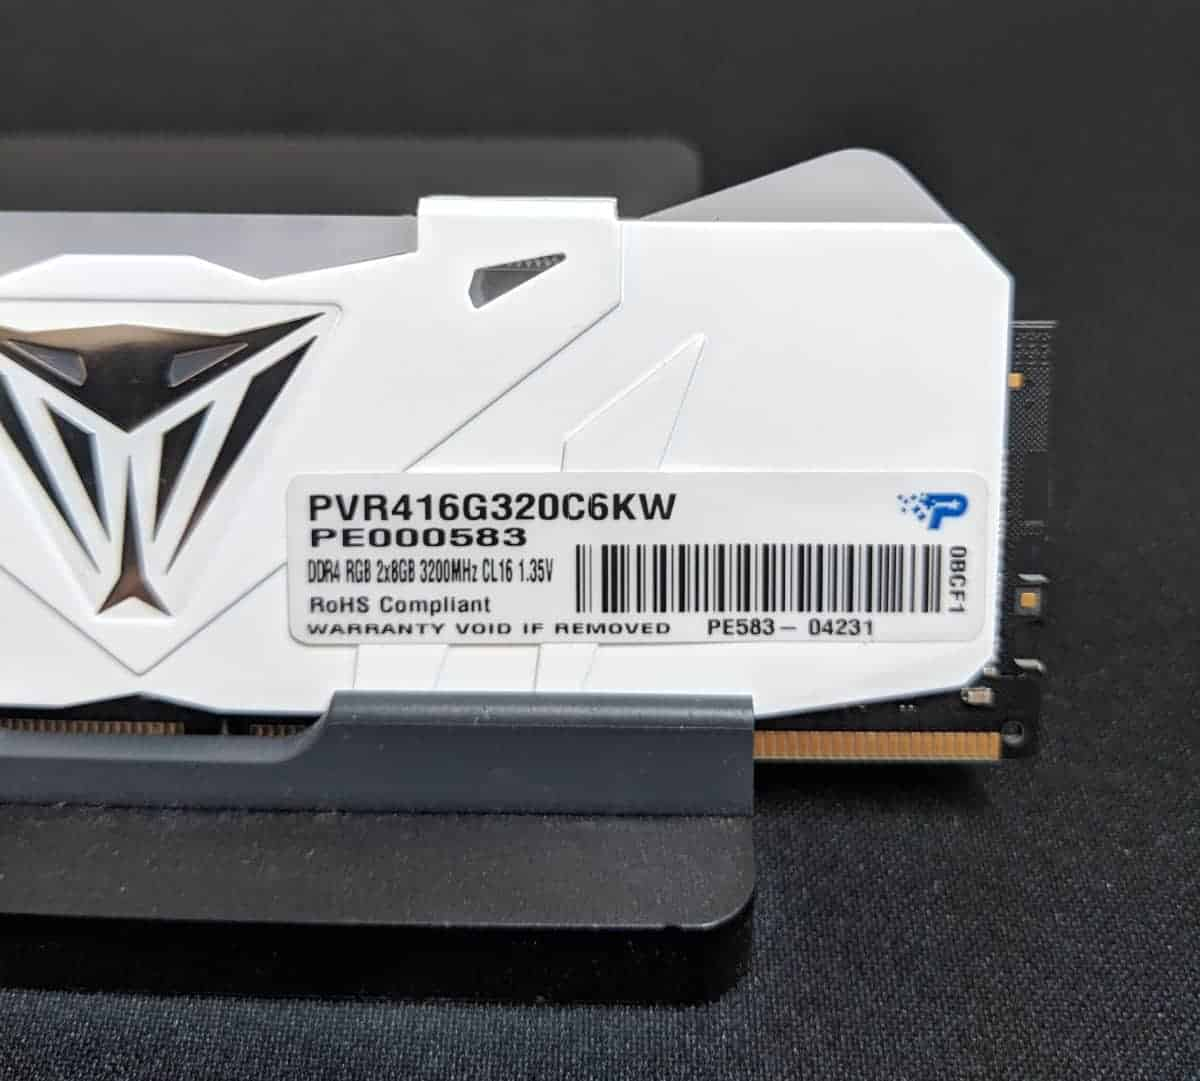 Viper RGB 3200MHz DDR4 RAM Review - The Streaming Blog